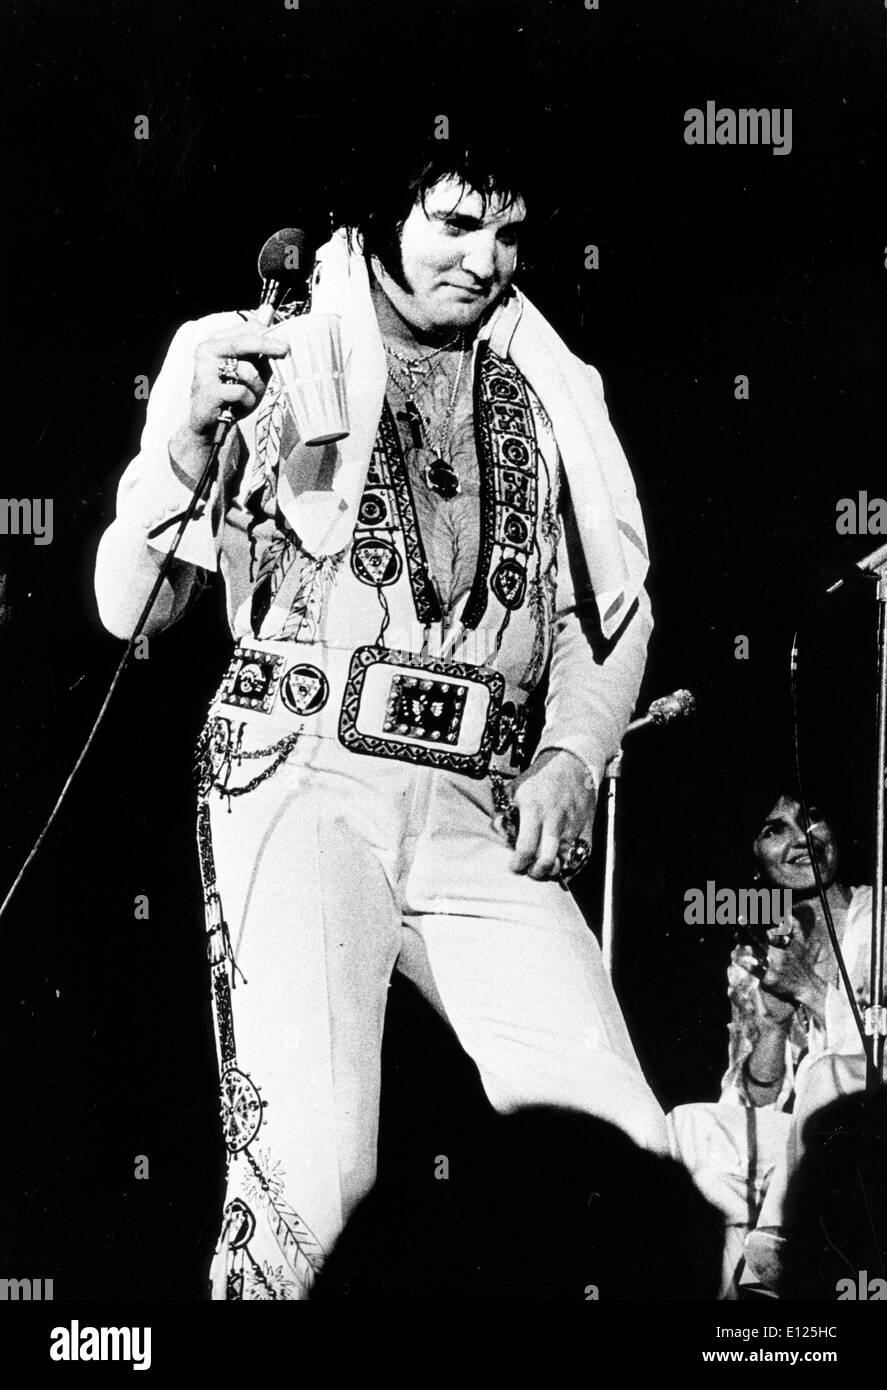 (File photo, exact date unknown) ELVIS PRESLEY at one of his final concerts in 1977. Elvis is shown in his over-weight pill-popping days, just months before his death. (Credit Image: KEYSTONE Pictures USA/ZUMAPRESS.com) - Stock Image